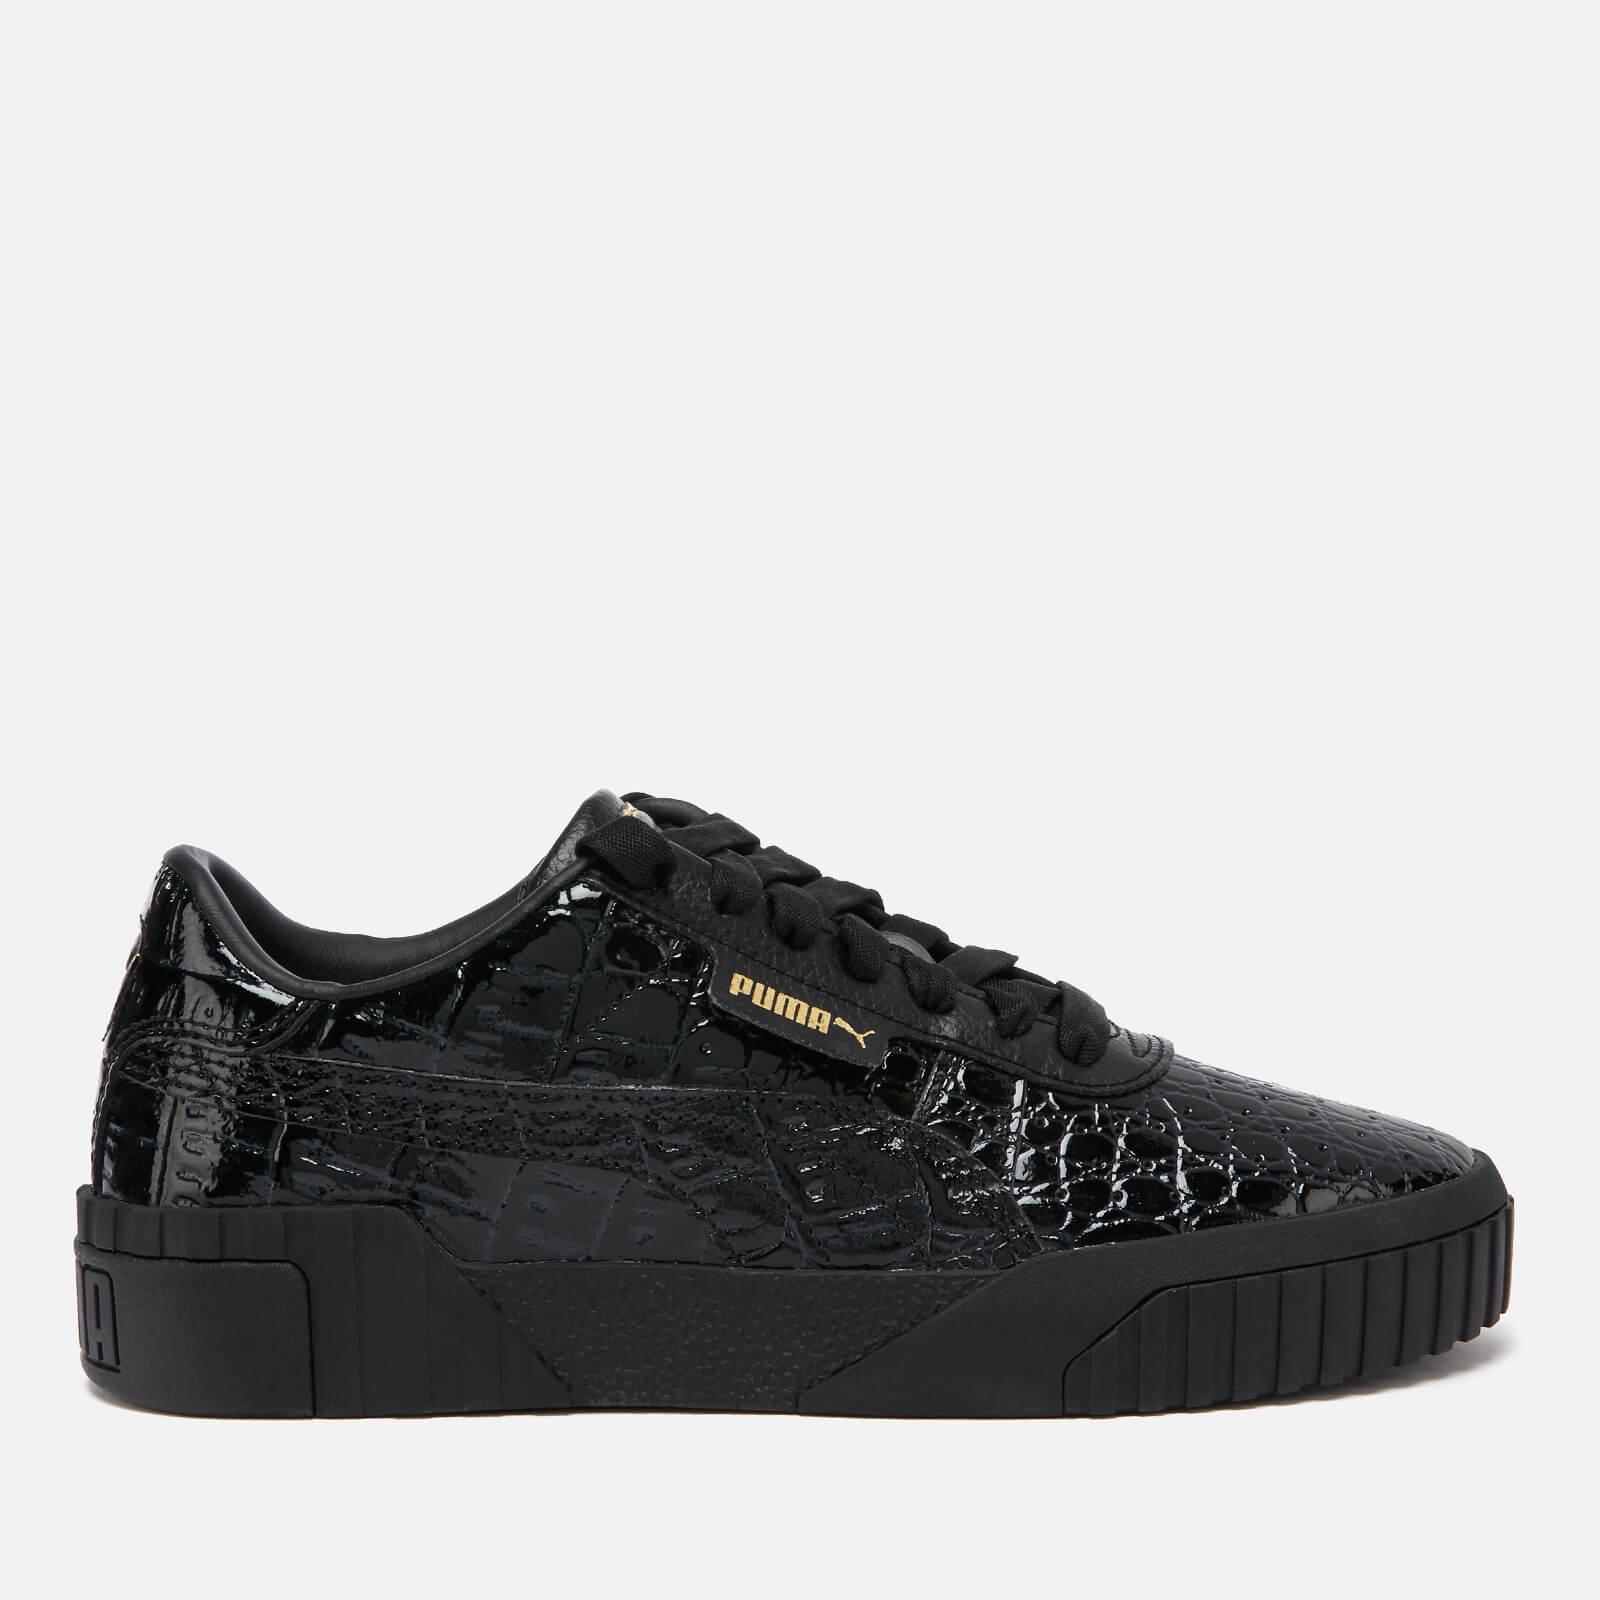 Puma Women's Cali Croc Trainers Puma BlackPuma Black